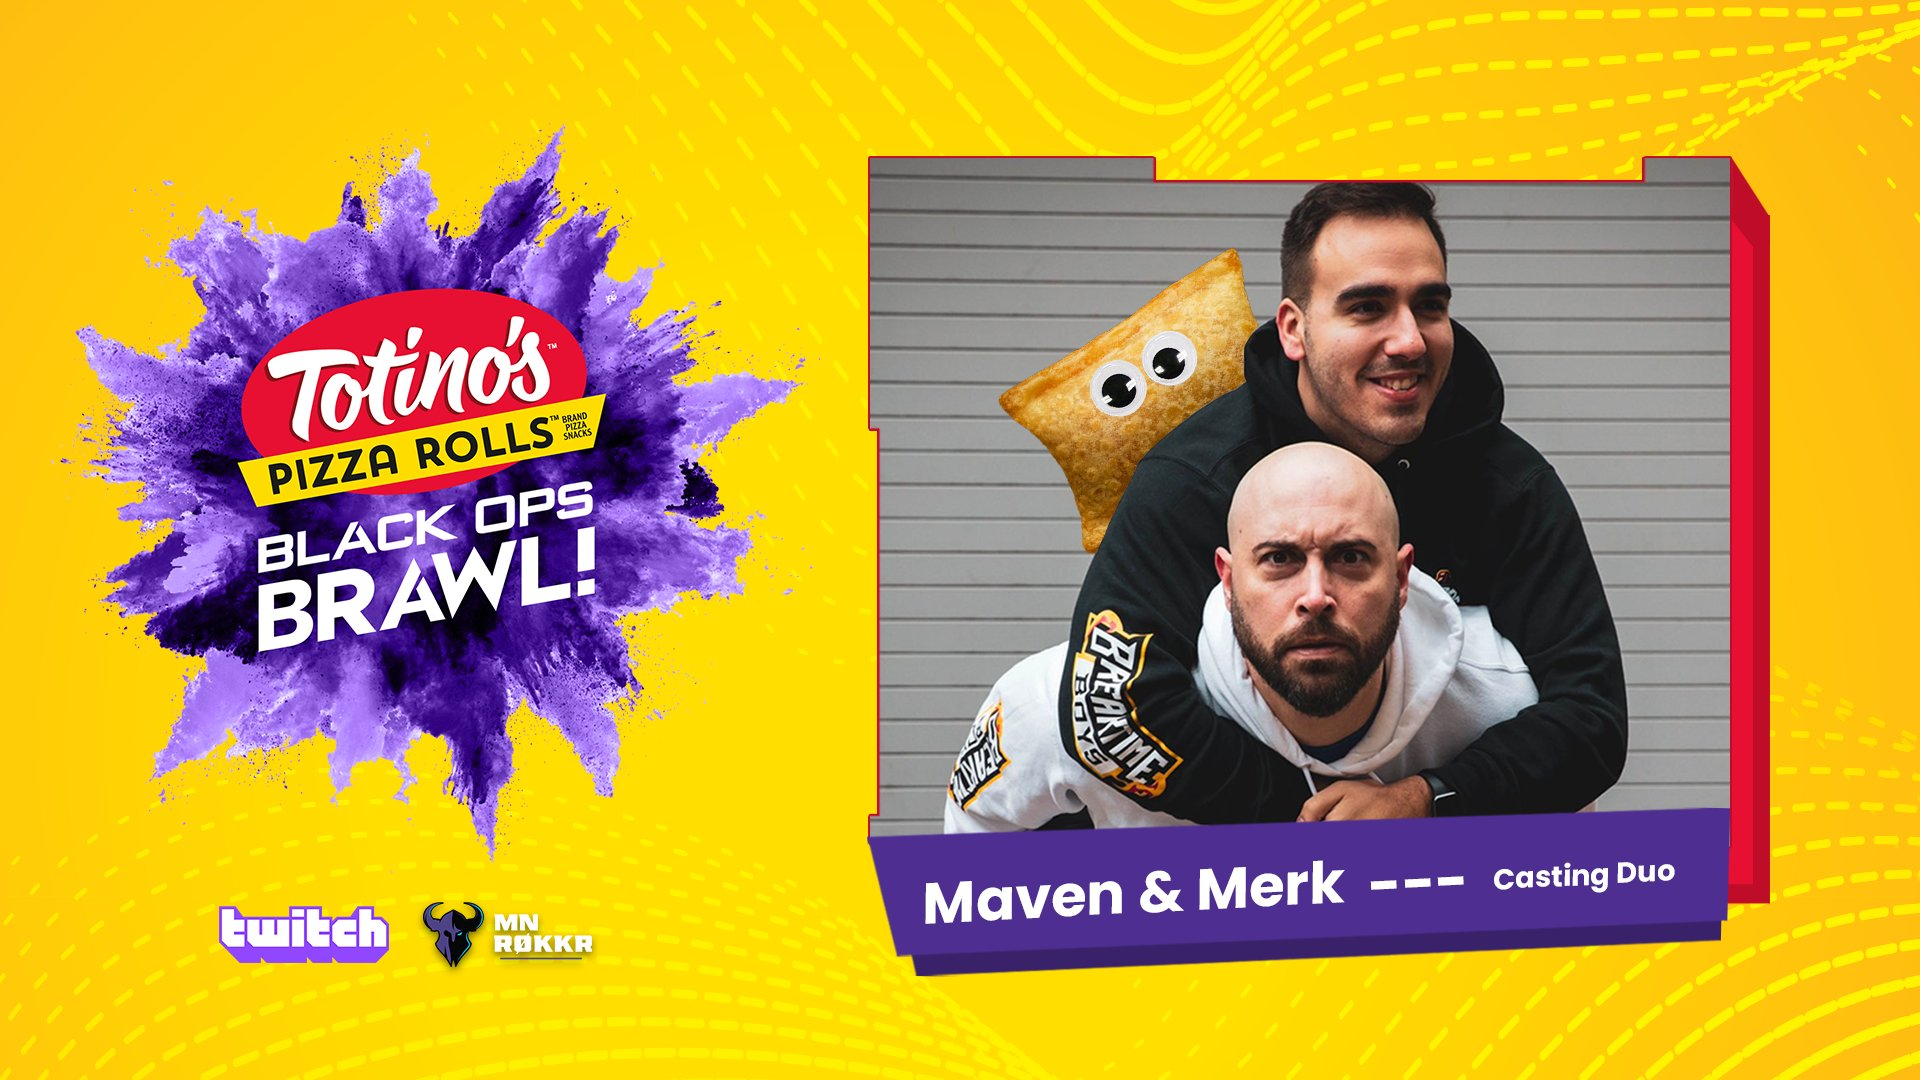 Totino's Black Ops Brawl casters Merk and Maven